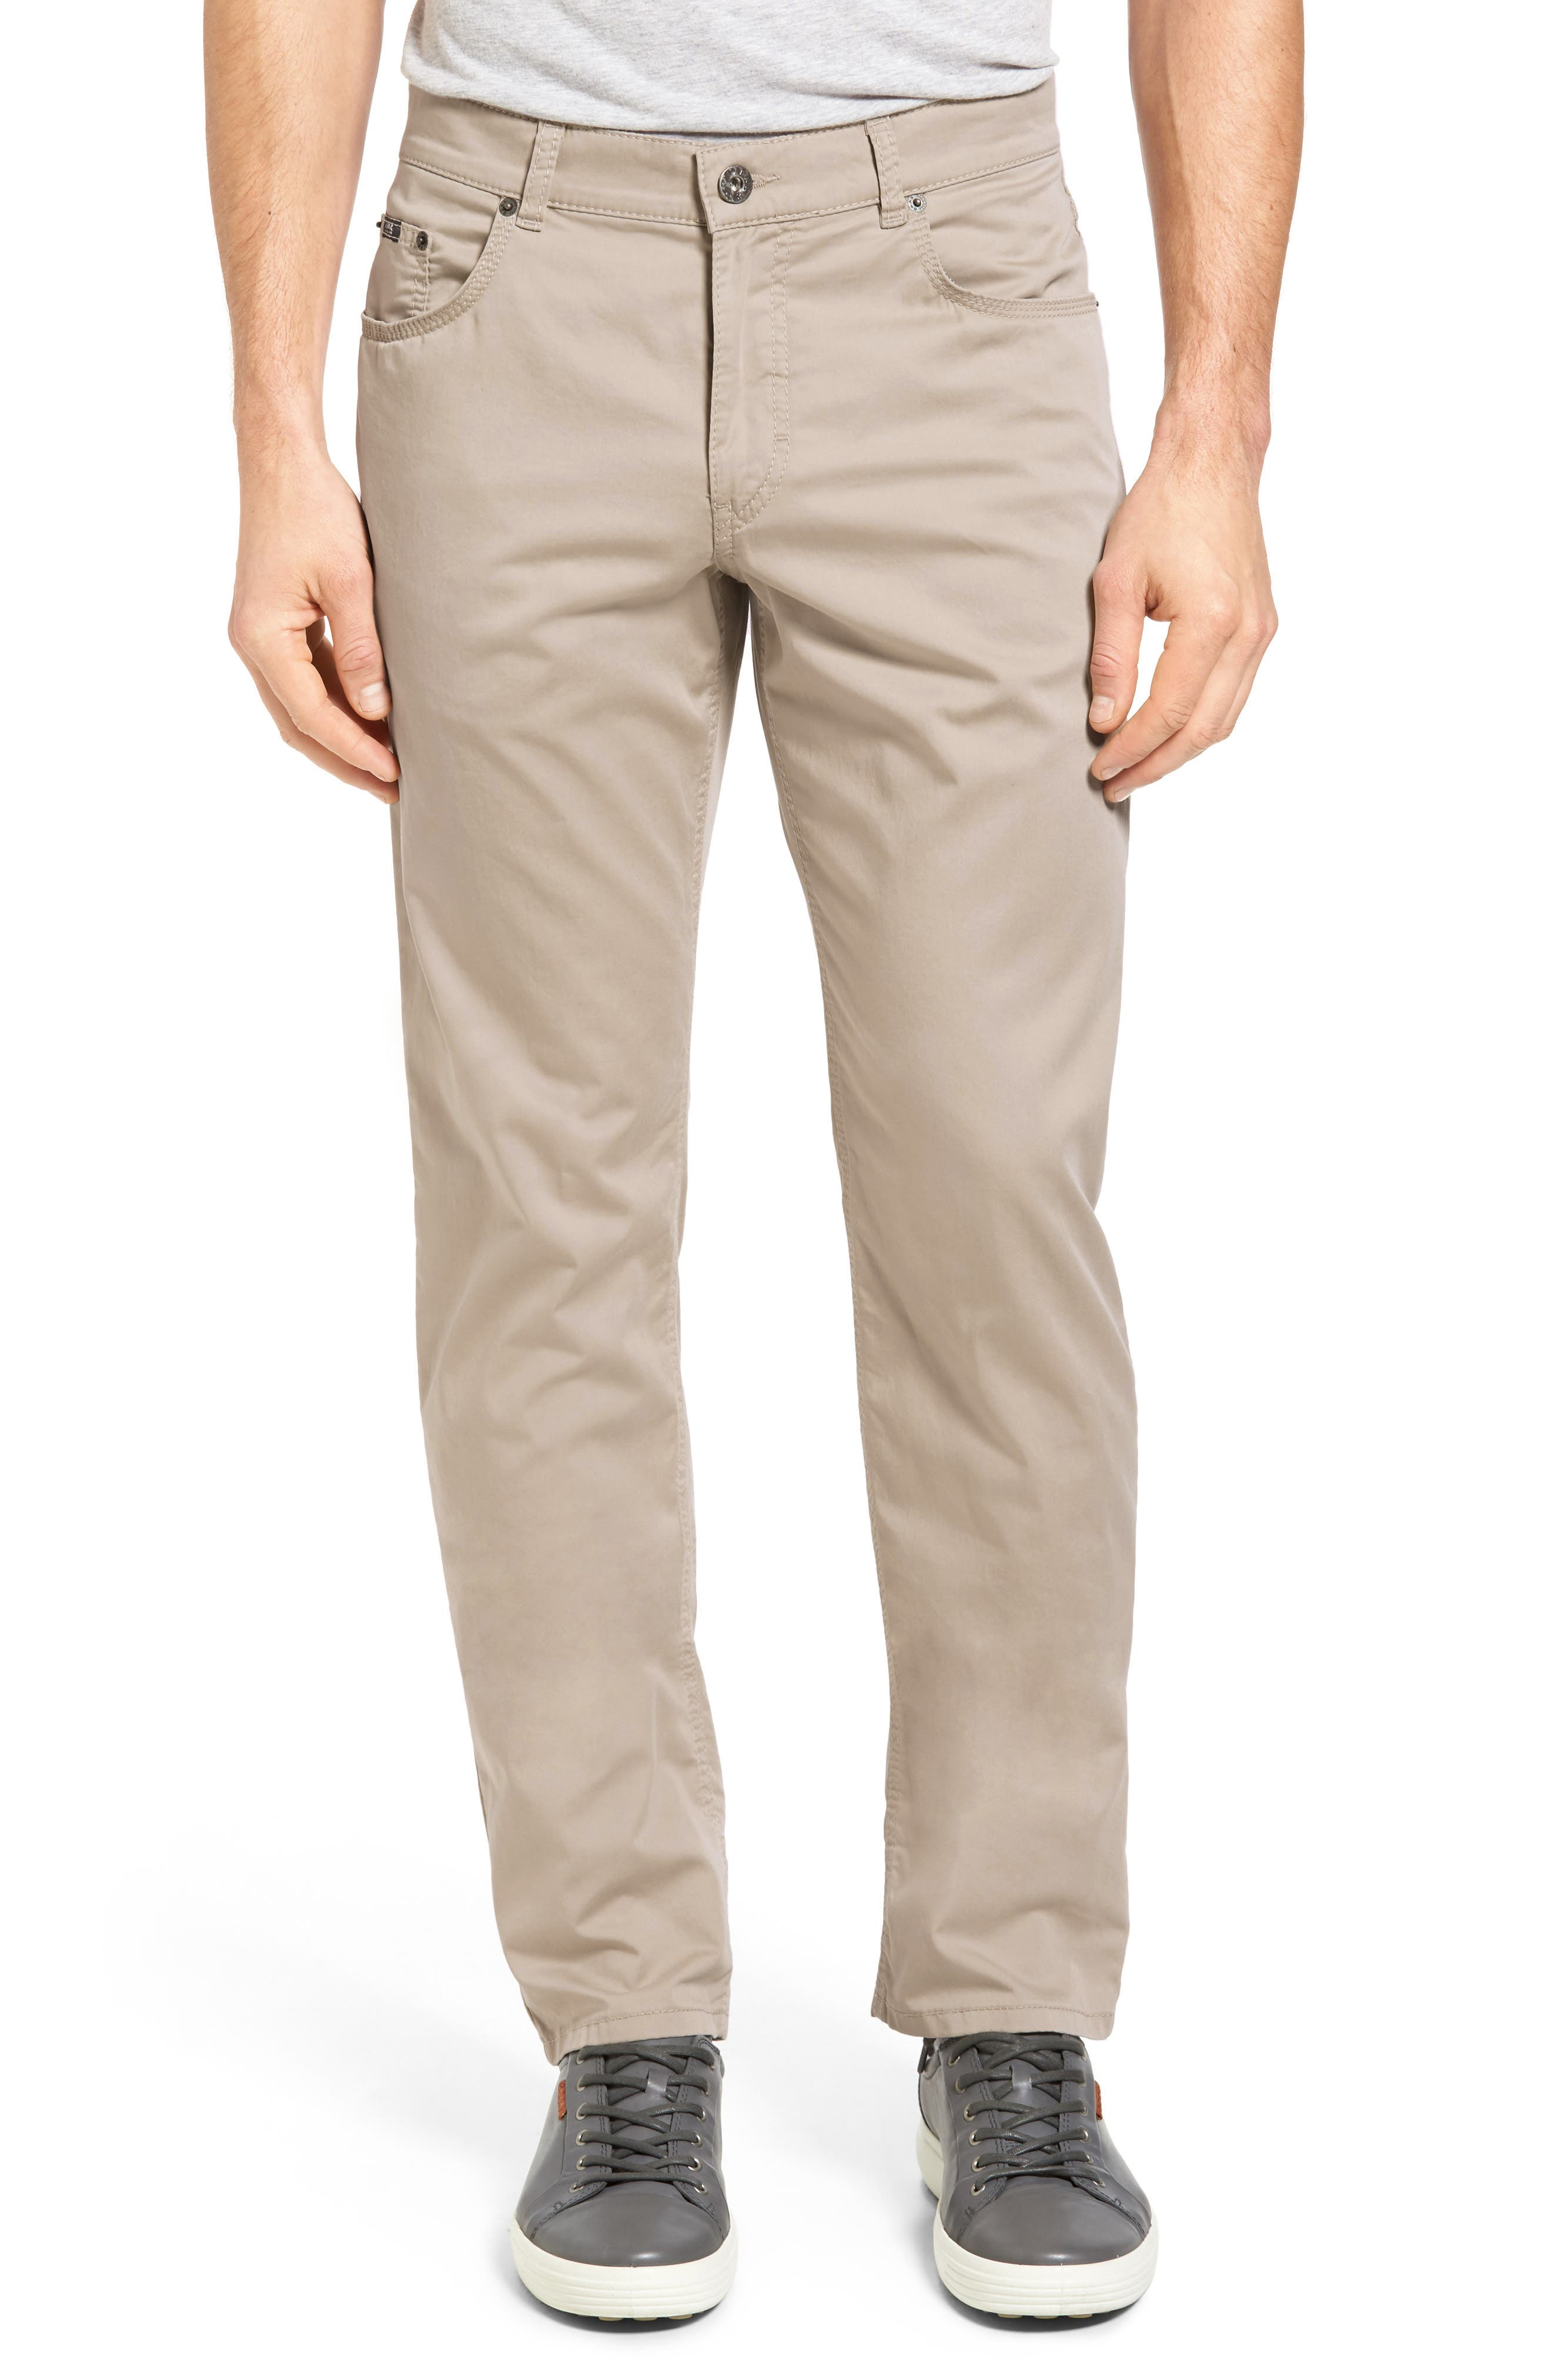 Alternate Image 1 Selected - Brax Prestige Stretch Cotton Pants